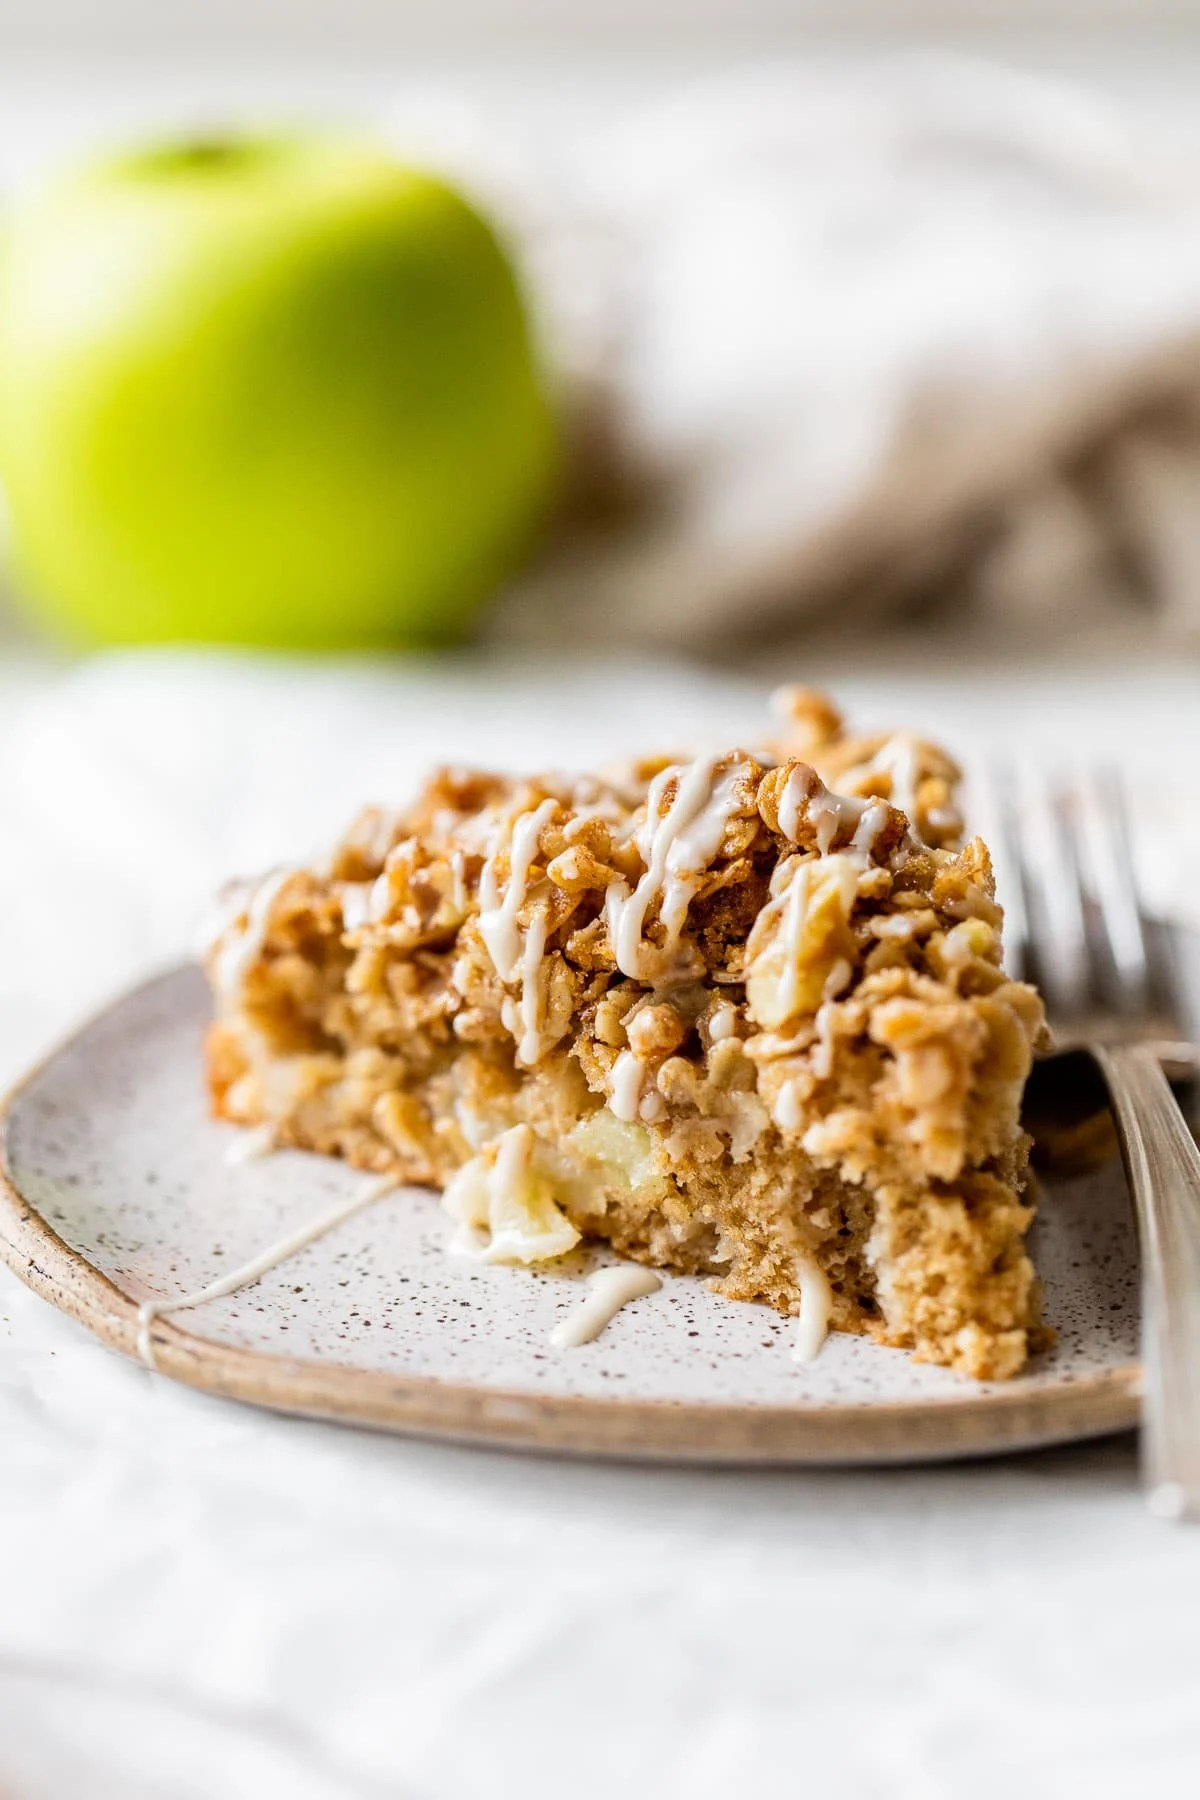 Best Ever Apple Coffee Cake with Extra Cinnamon Streusel Topping. SO moist and the walnut oat topping is addictive!